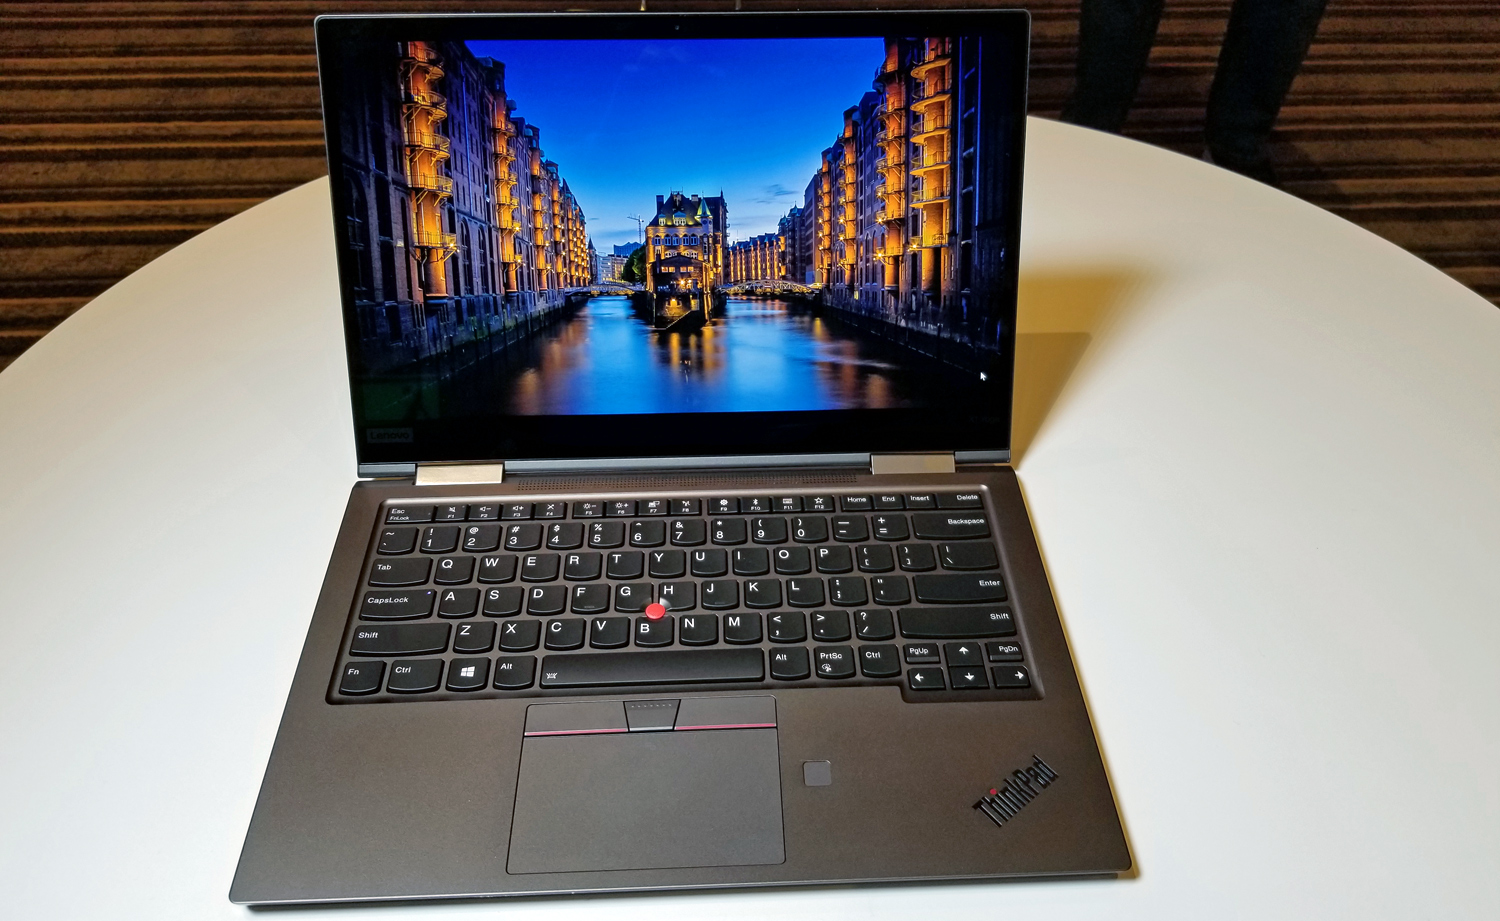 Lenovo at CES 2019: ThinkPad X1 Yoga Gets Thinner Aluminum